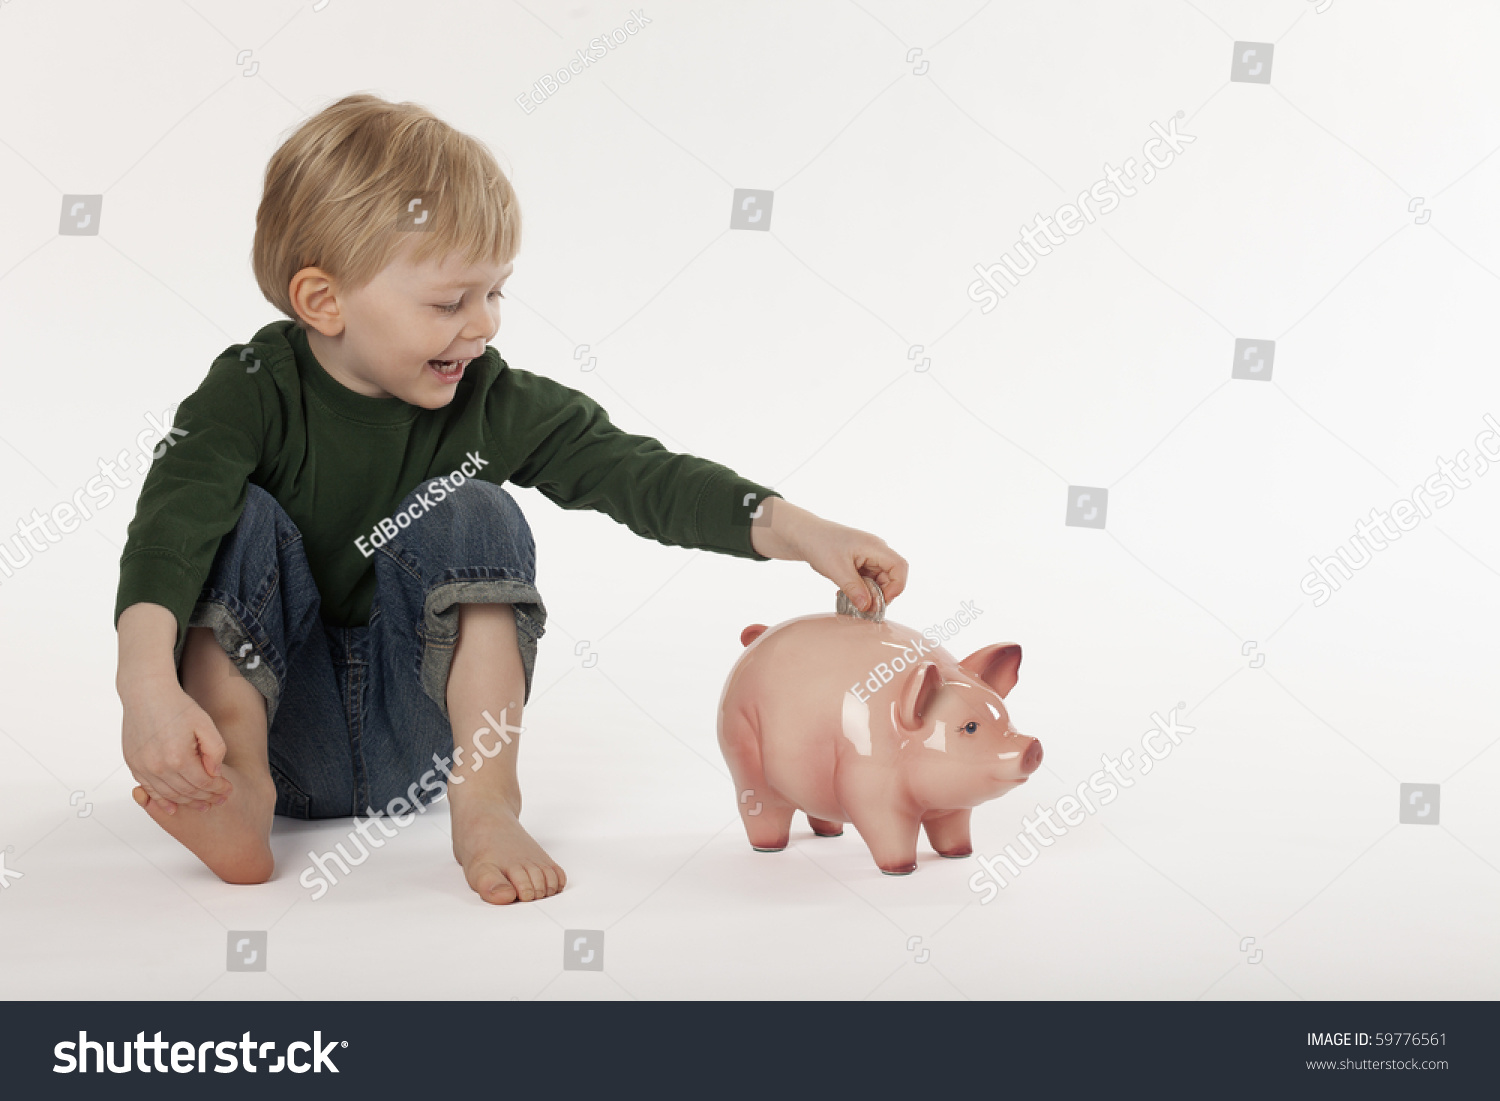 Piggy Banks For Little Boys Cute Little Boy Puts A Coin Into A Piggy Bank While